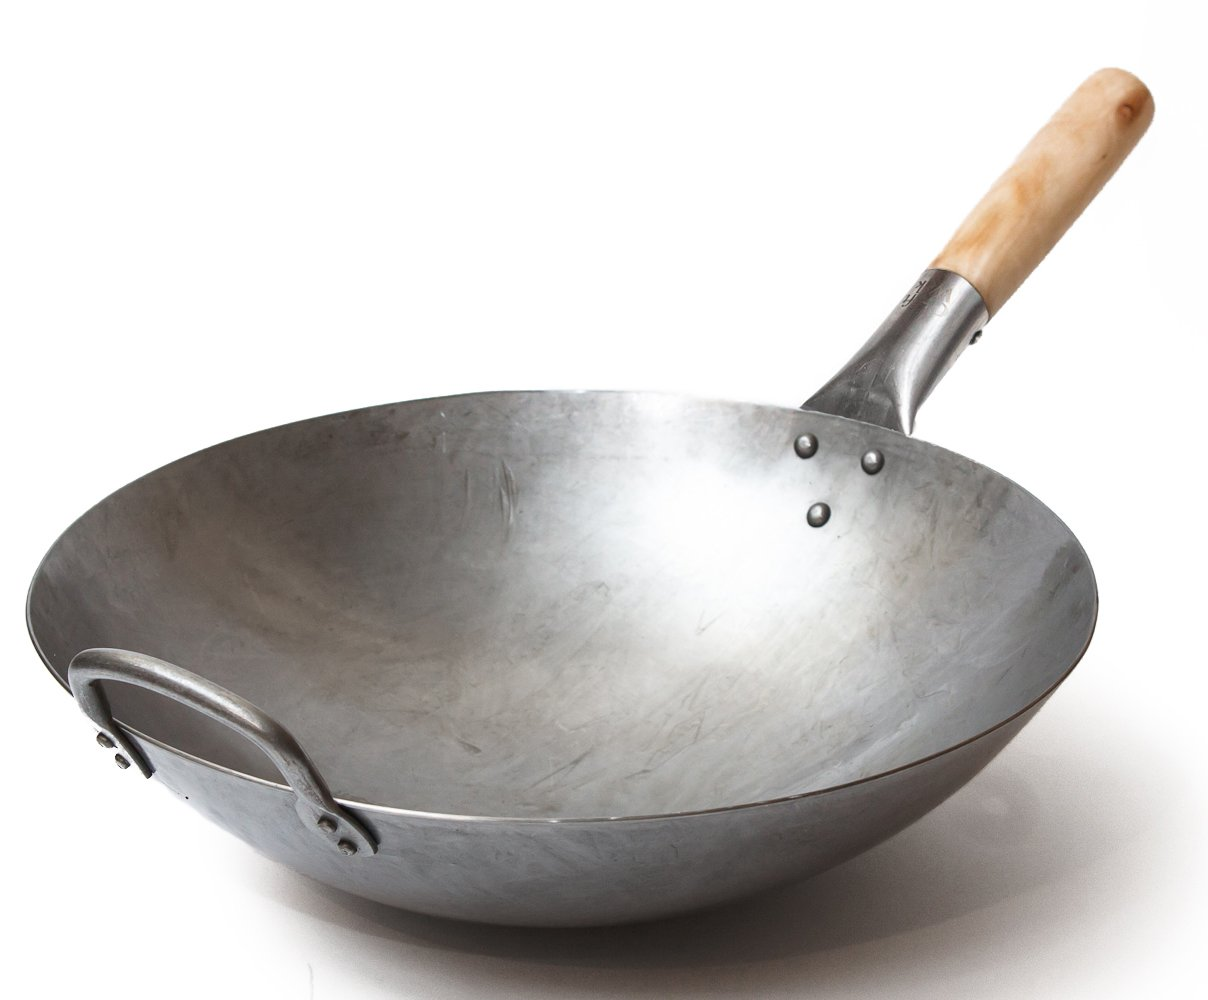 Best Carbon Steel Wok Reviews 2019: Top 5+ Recommended 2 #cookymom